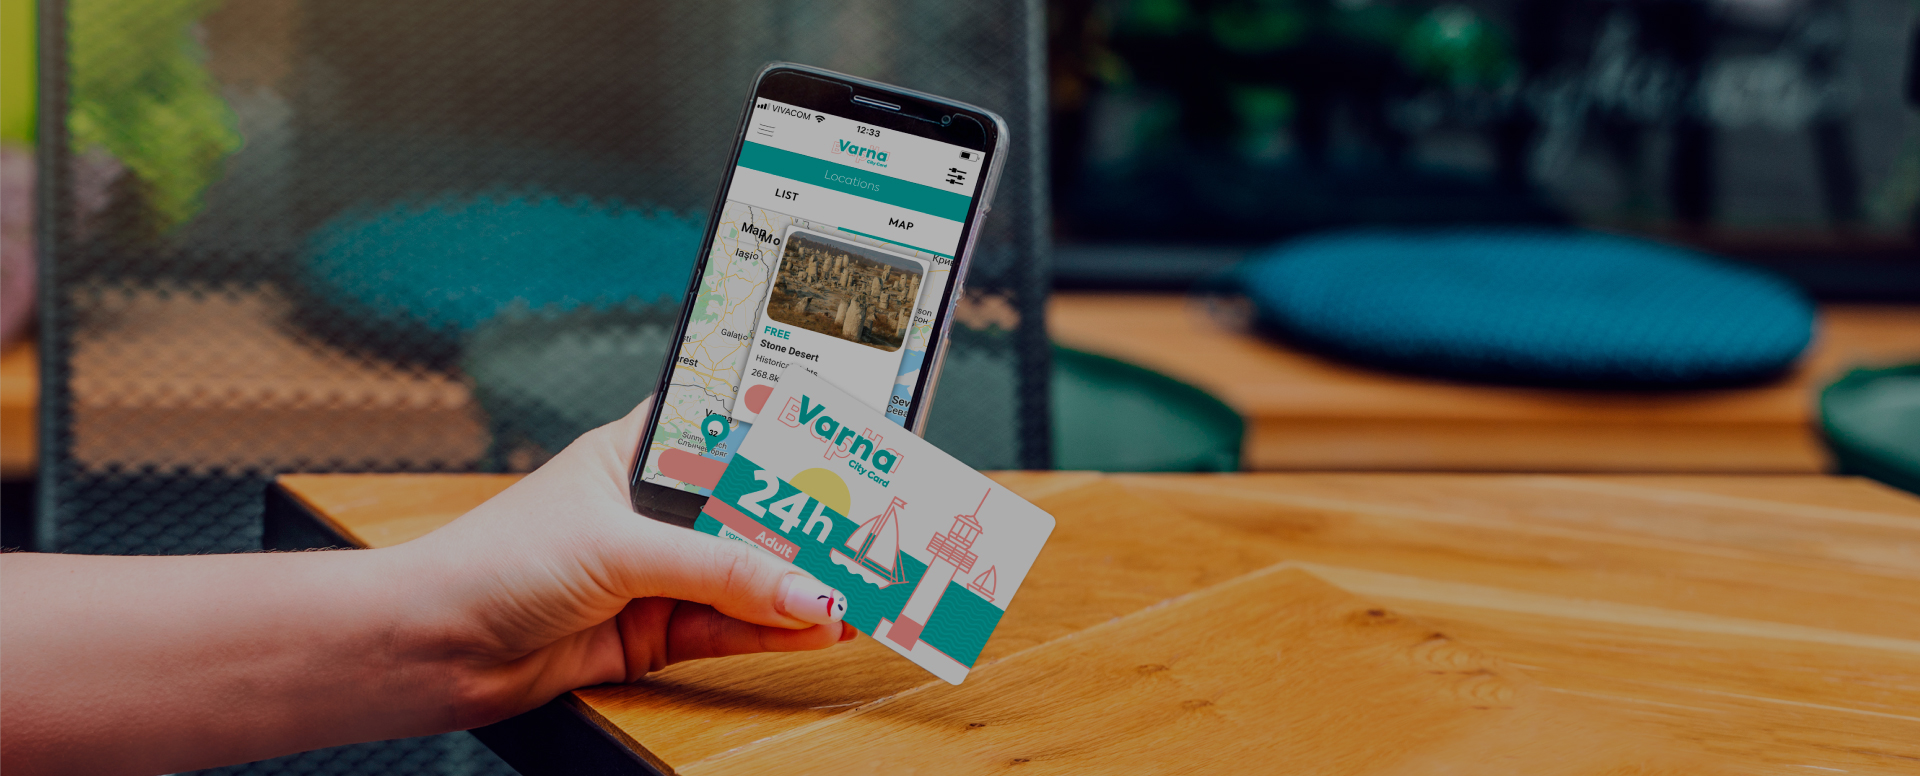 varna-city-card-mobile-app